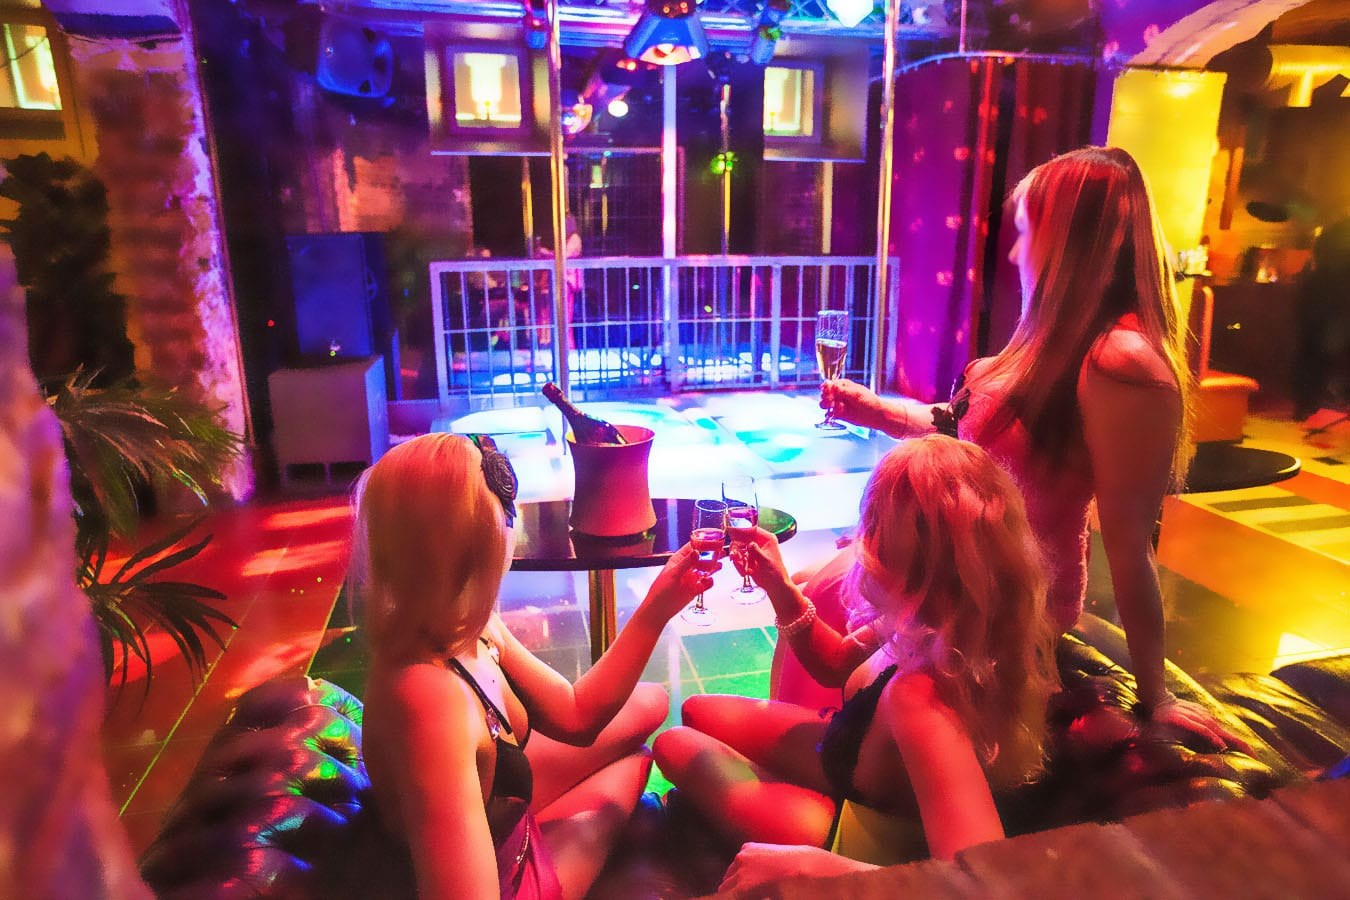 Strippers are doing it for themselves